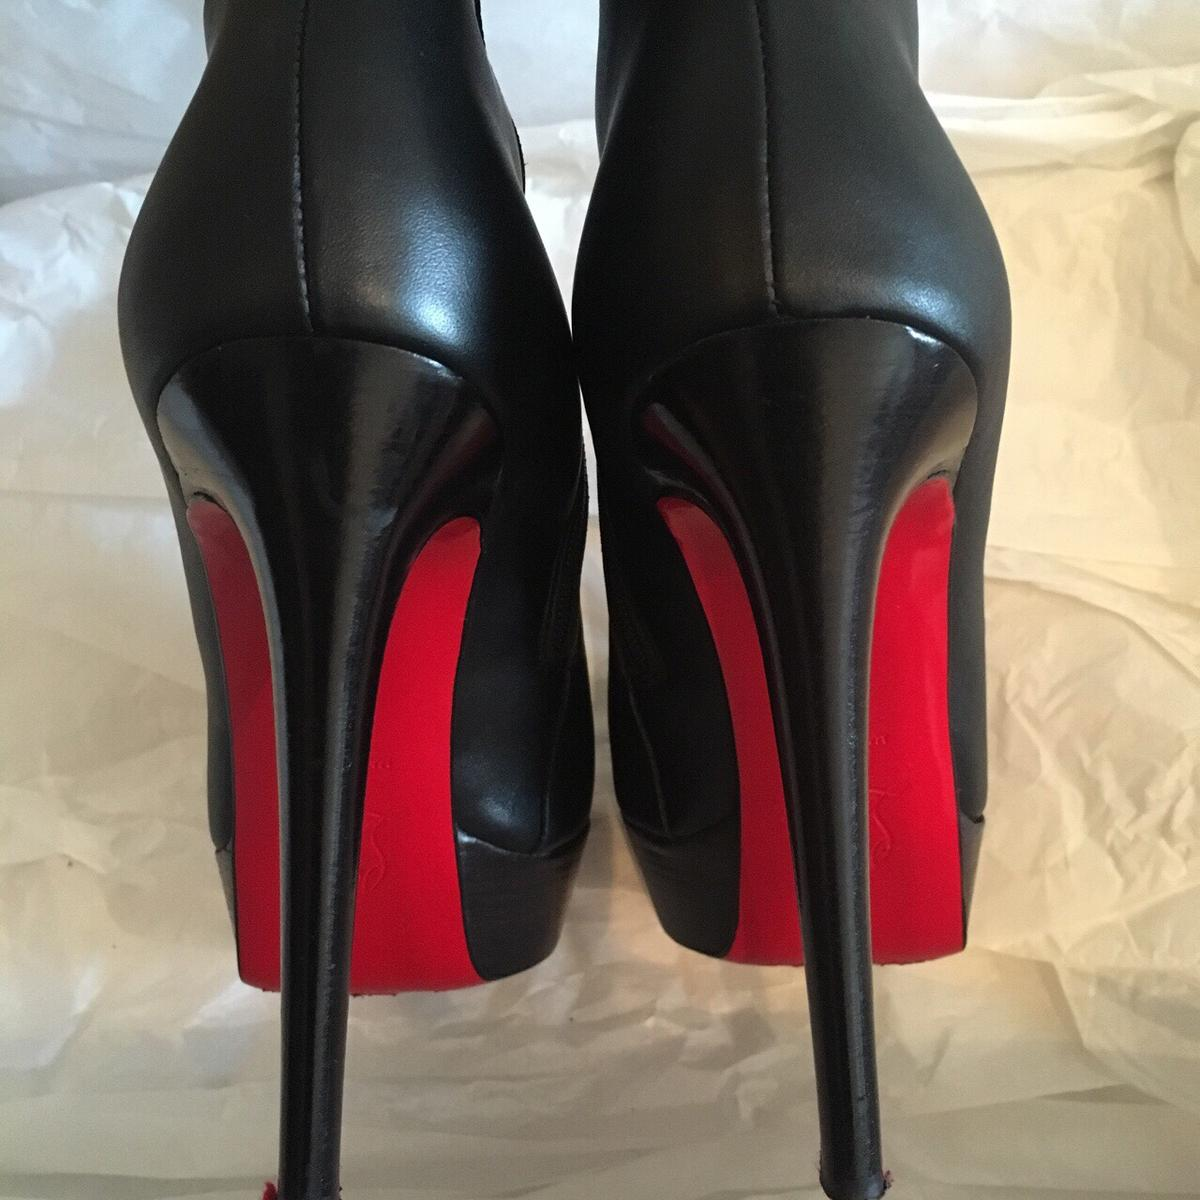 newest 97487 c5ffe Authentic Louboutin Boots for sale!! in SW15 Wandsworth for ...